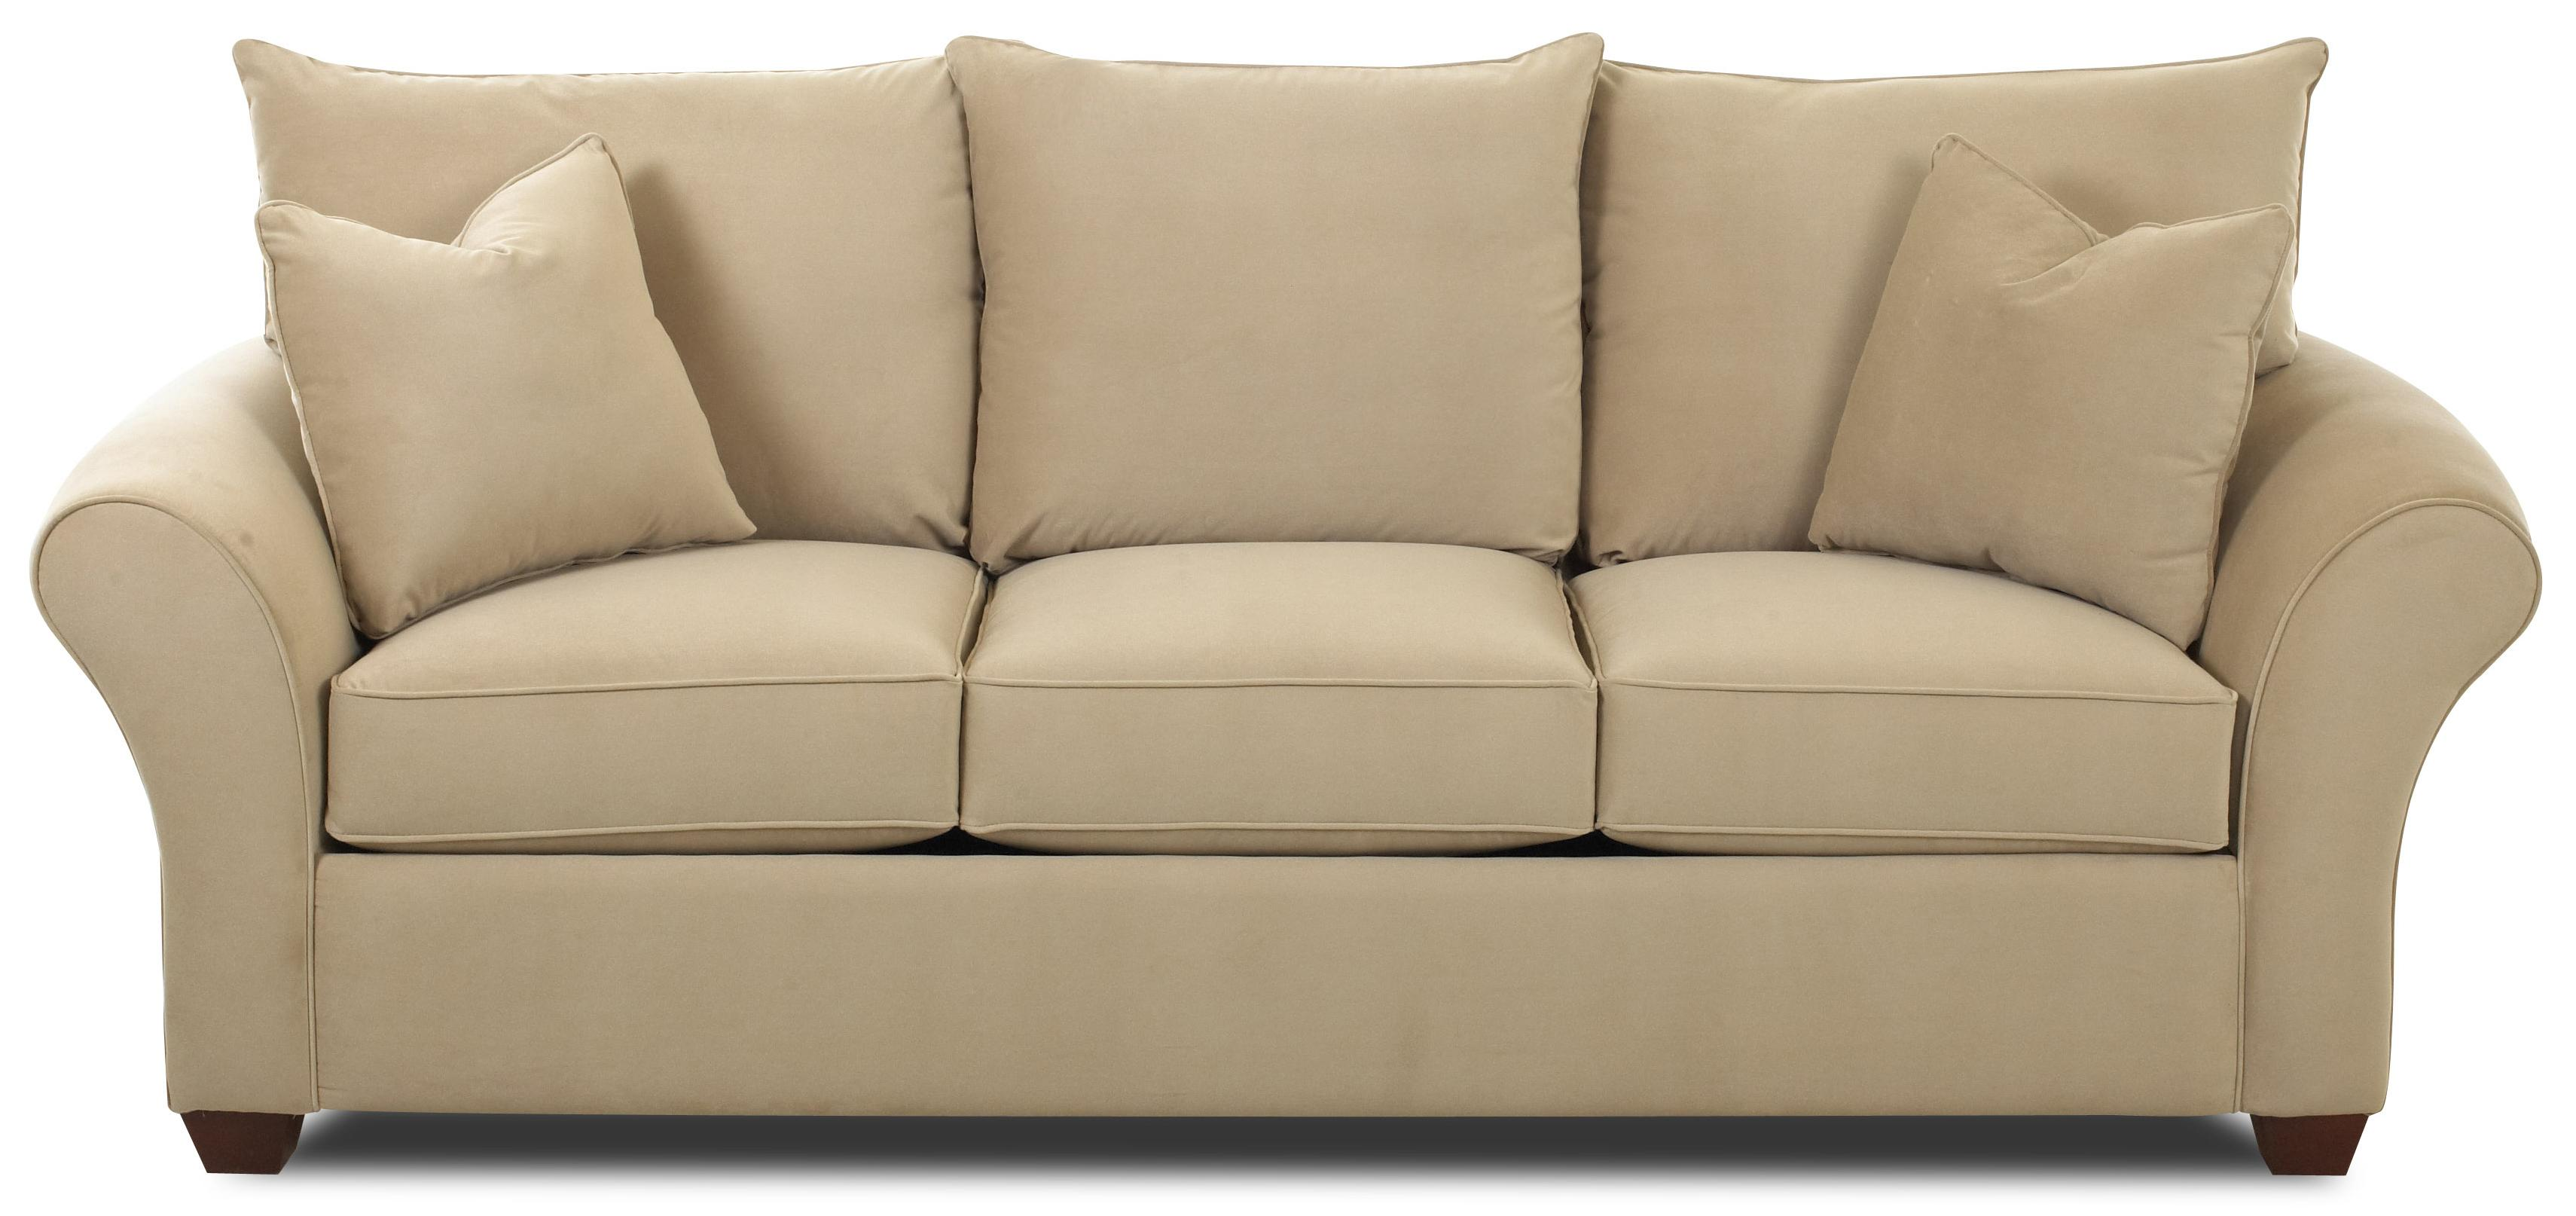 Comfortable Stationary Couch